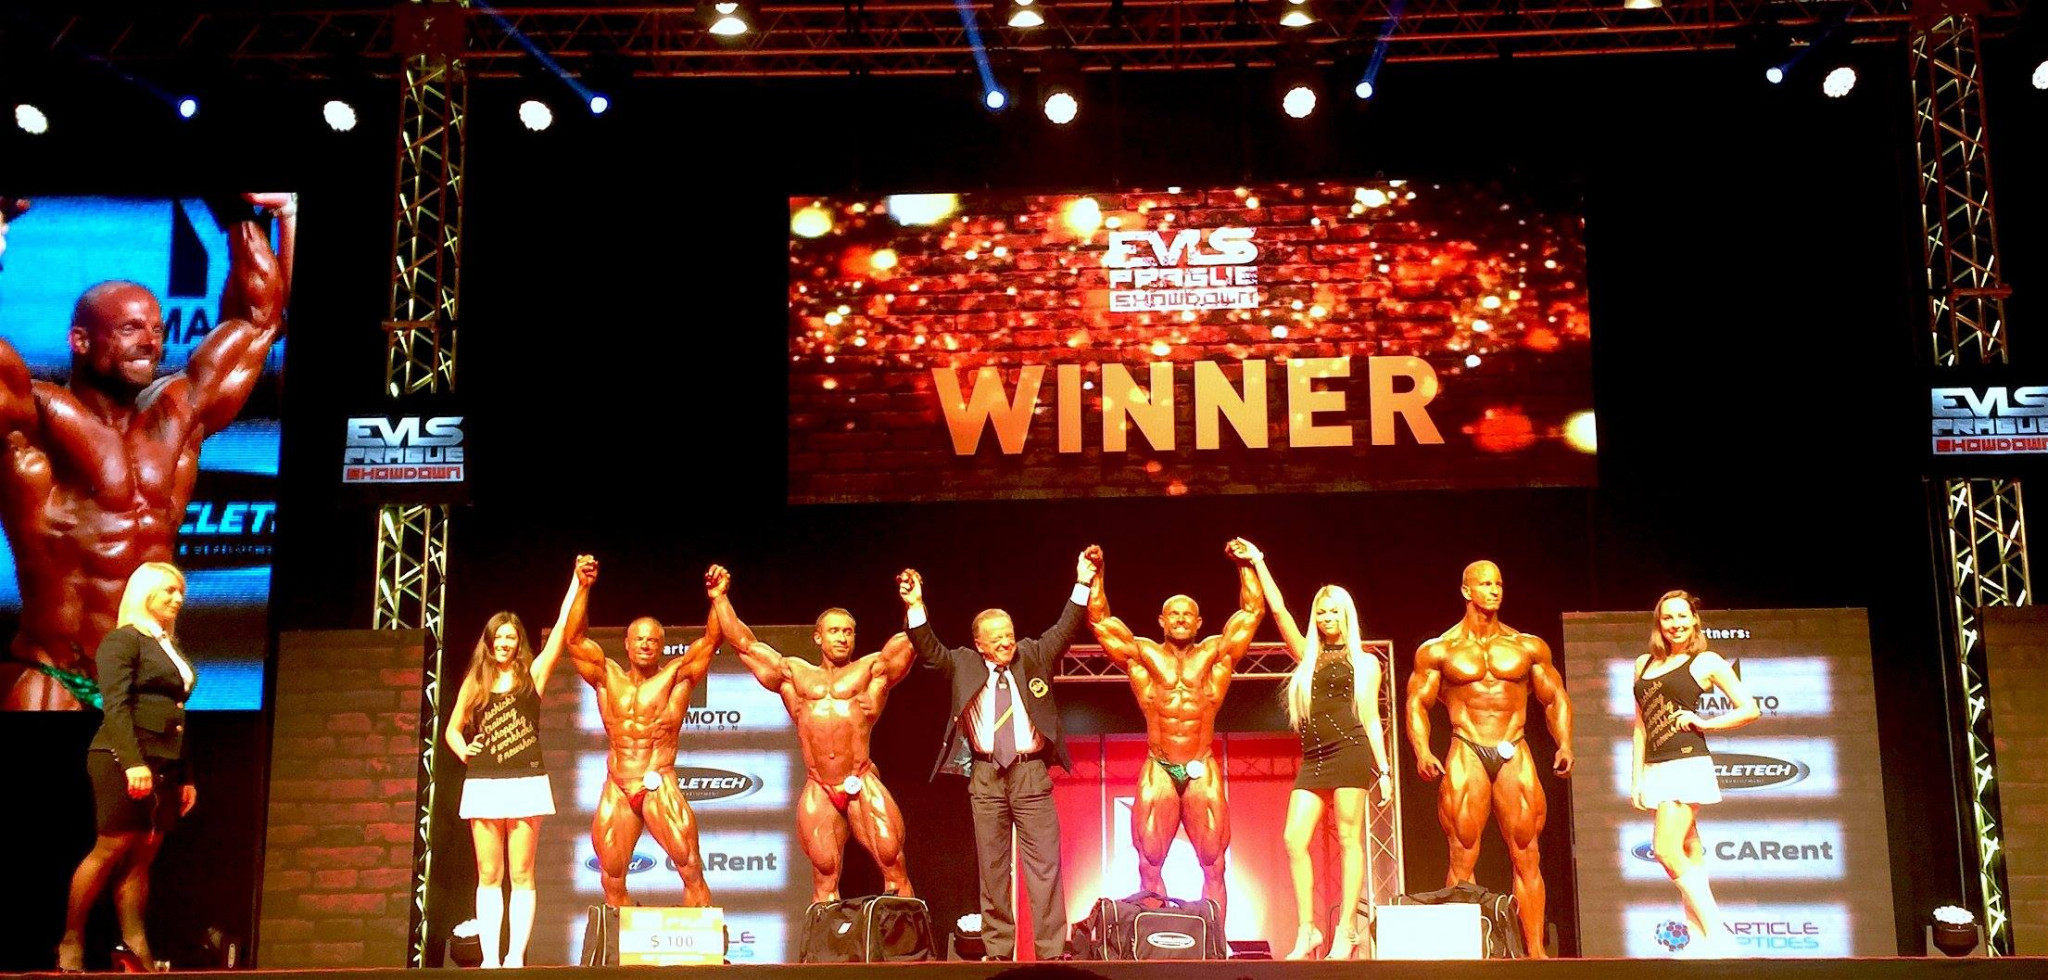 IFBB celebrates eventful weekend of bodybuilding competitions across Europe